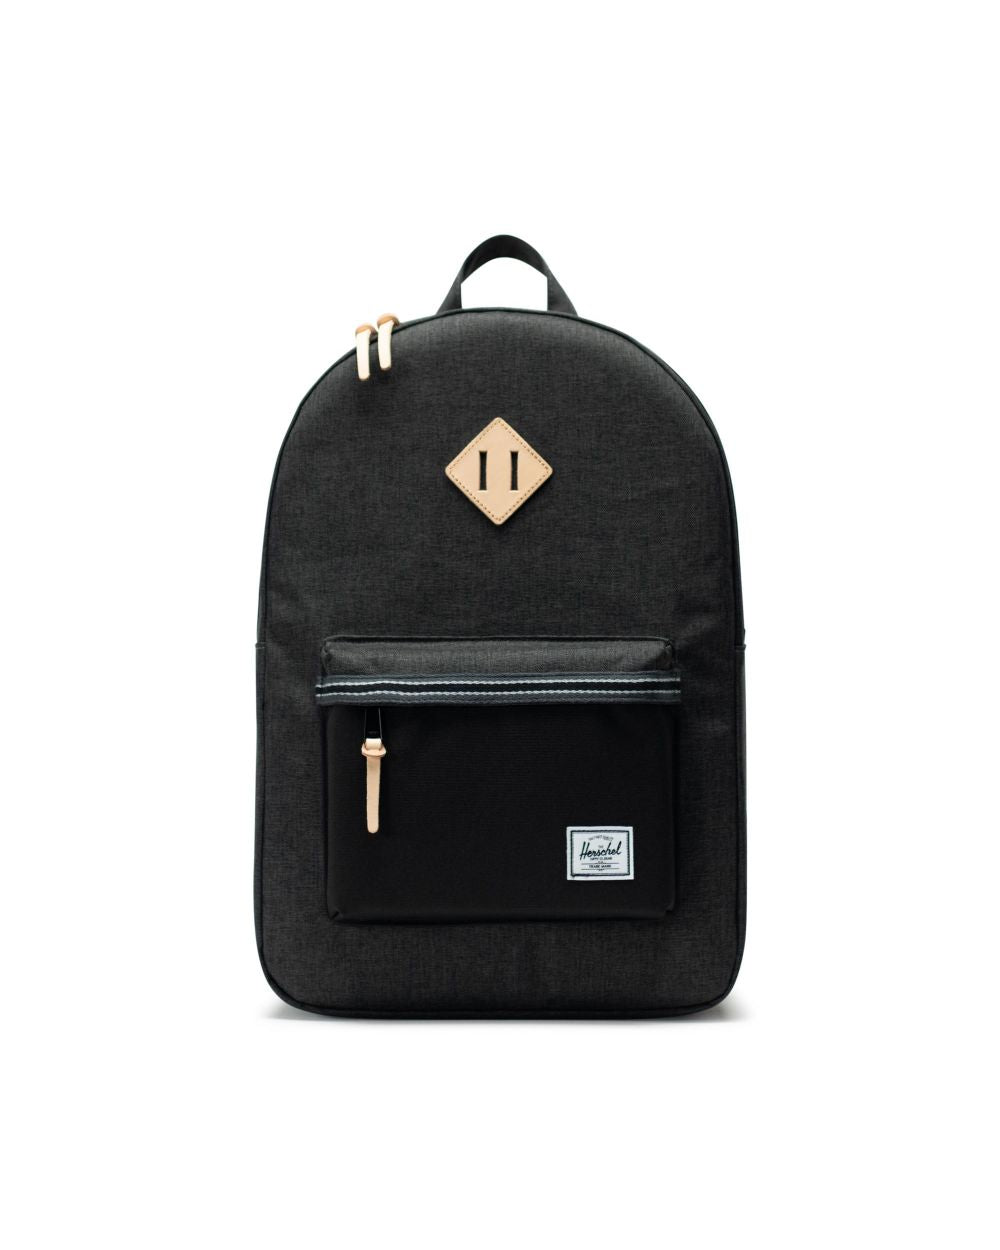 Herschel Supply Co. - Heritage Backpack, Black/Black Crosshatch